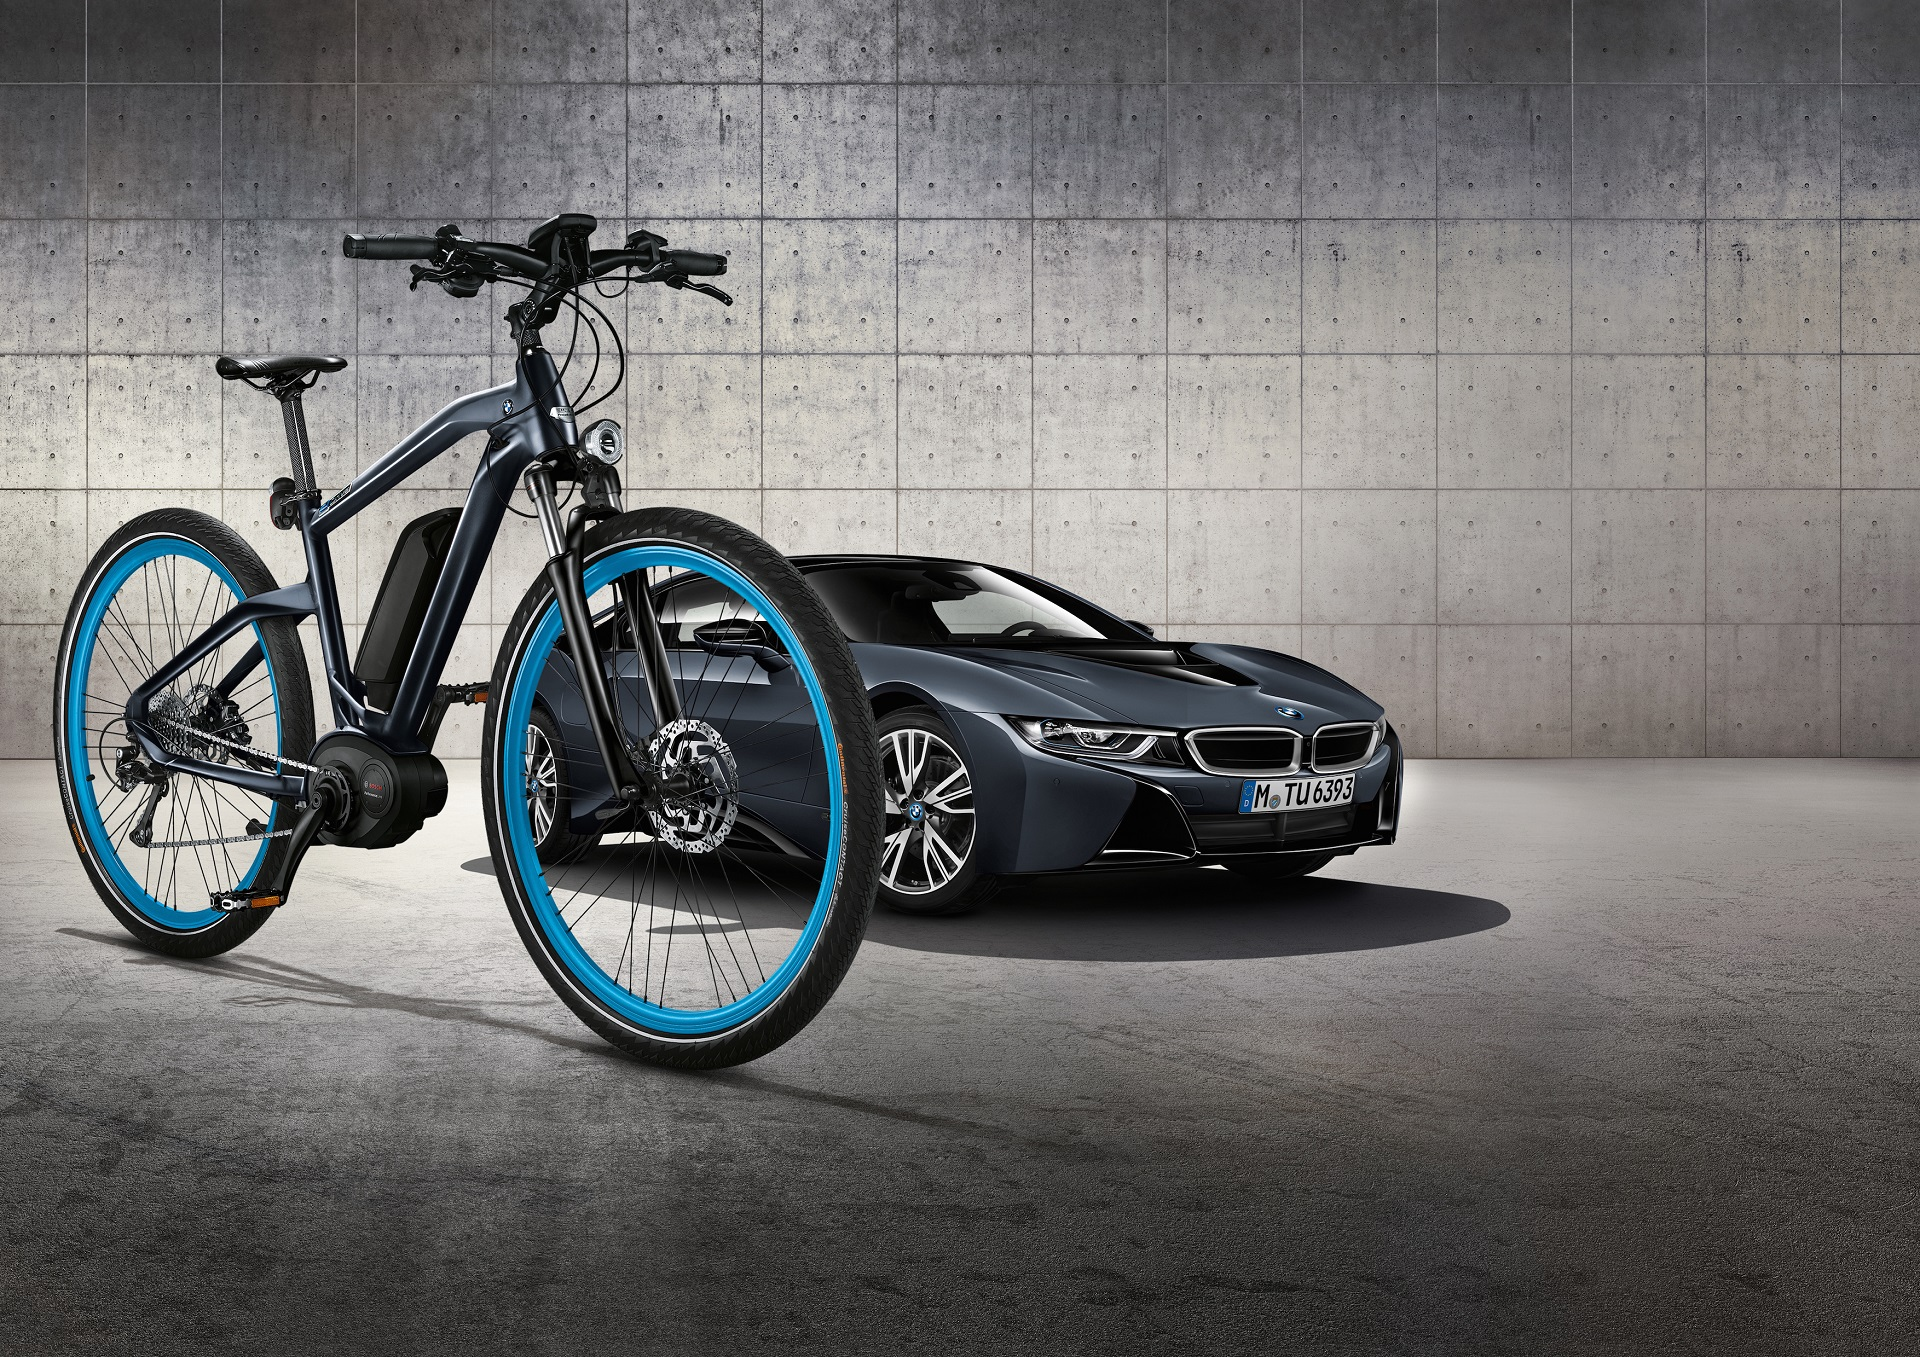 Bmw Launches Limited Edition Cruise E Bike In Protonic Dark Silver